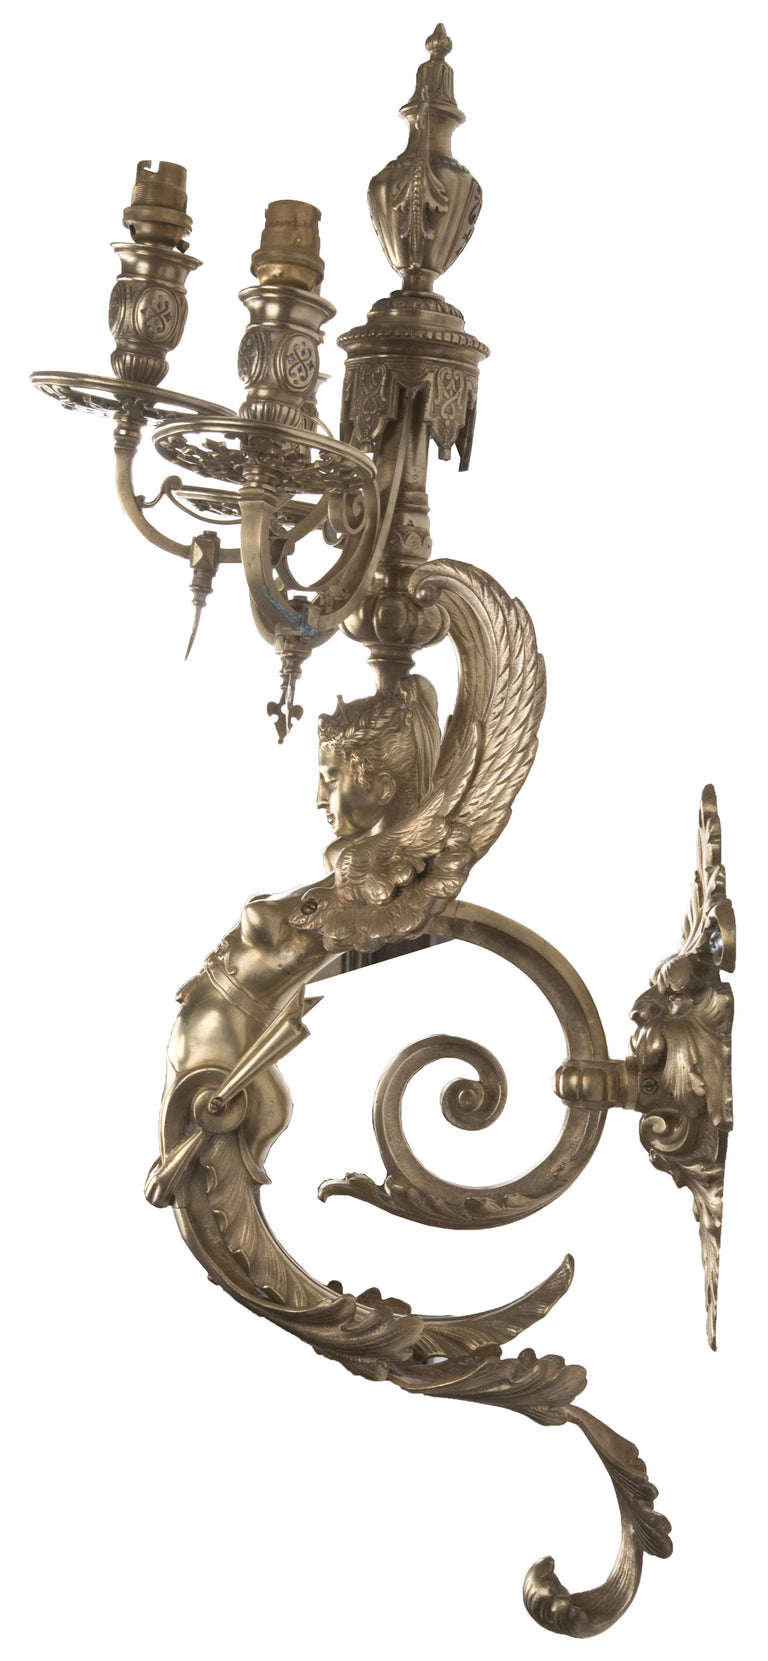 A Pair of Ornate Winged Caryatid Wall Sconces